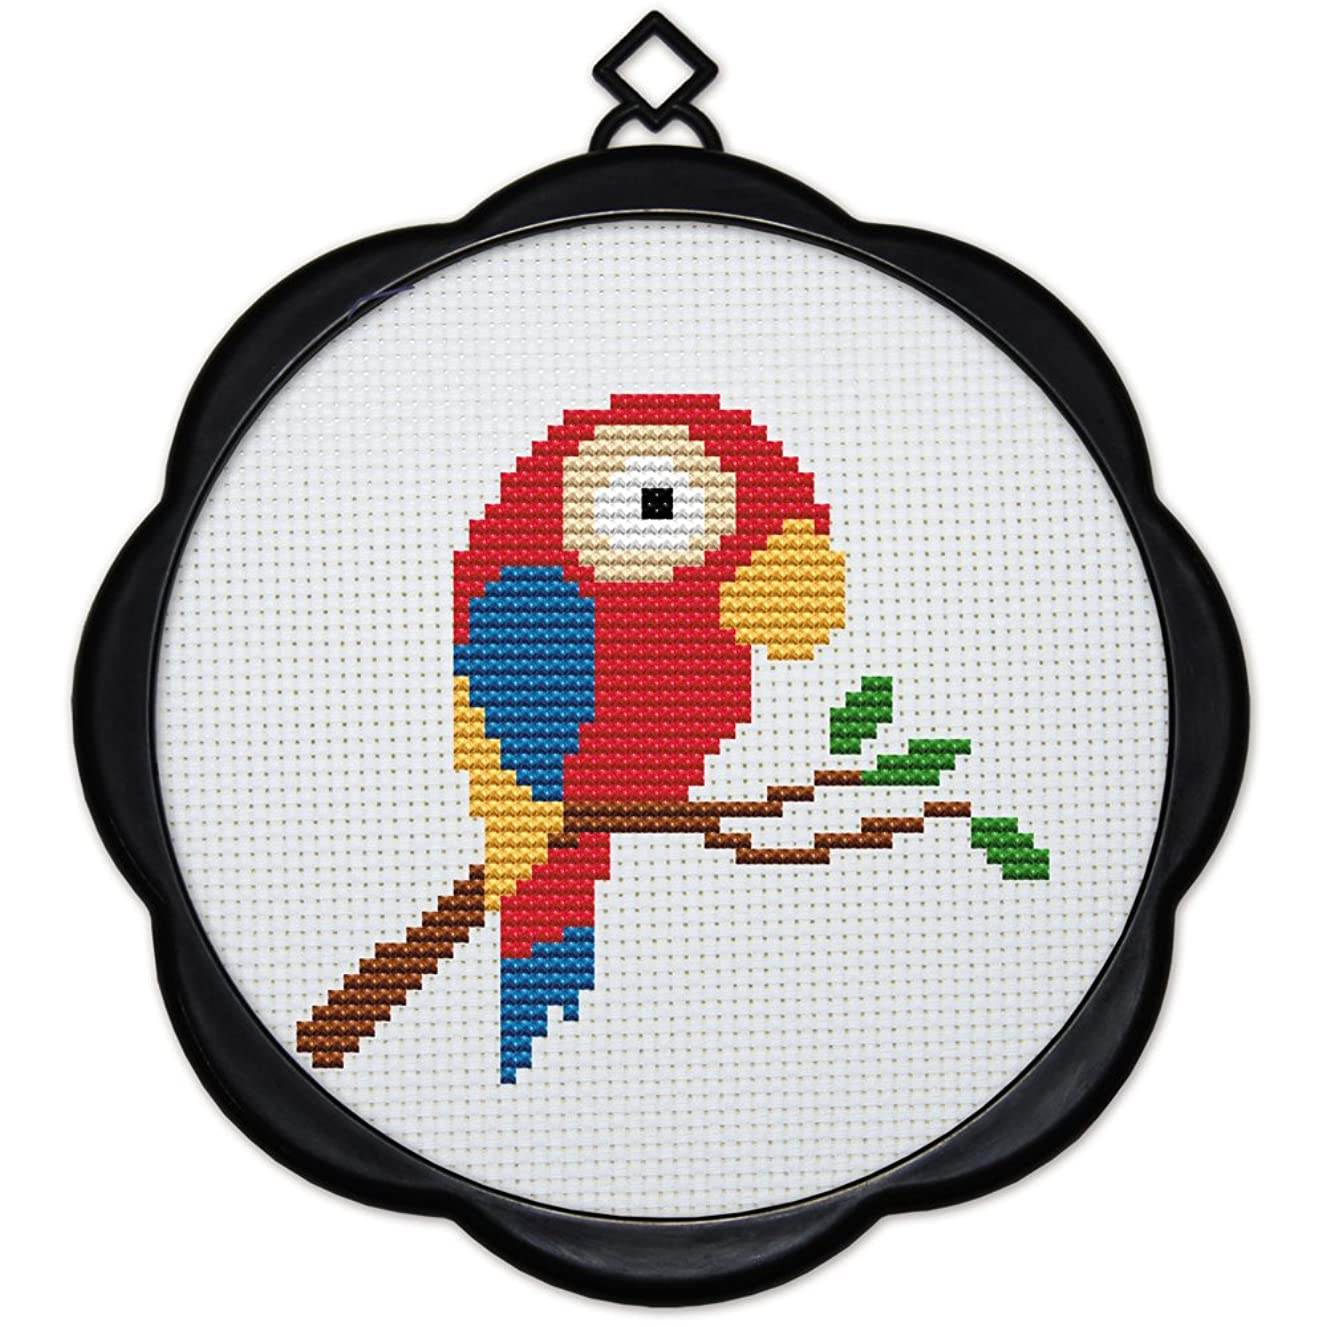 Full Range of Embroidery Starter Kits Stamped Cross Stitch Kits Beginners for DIY Embroidery (Multiple Pattern Designs) - A Little Parrot